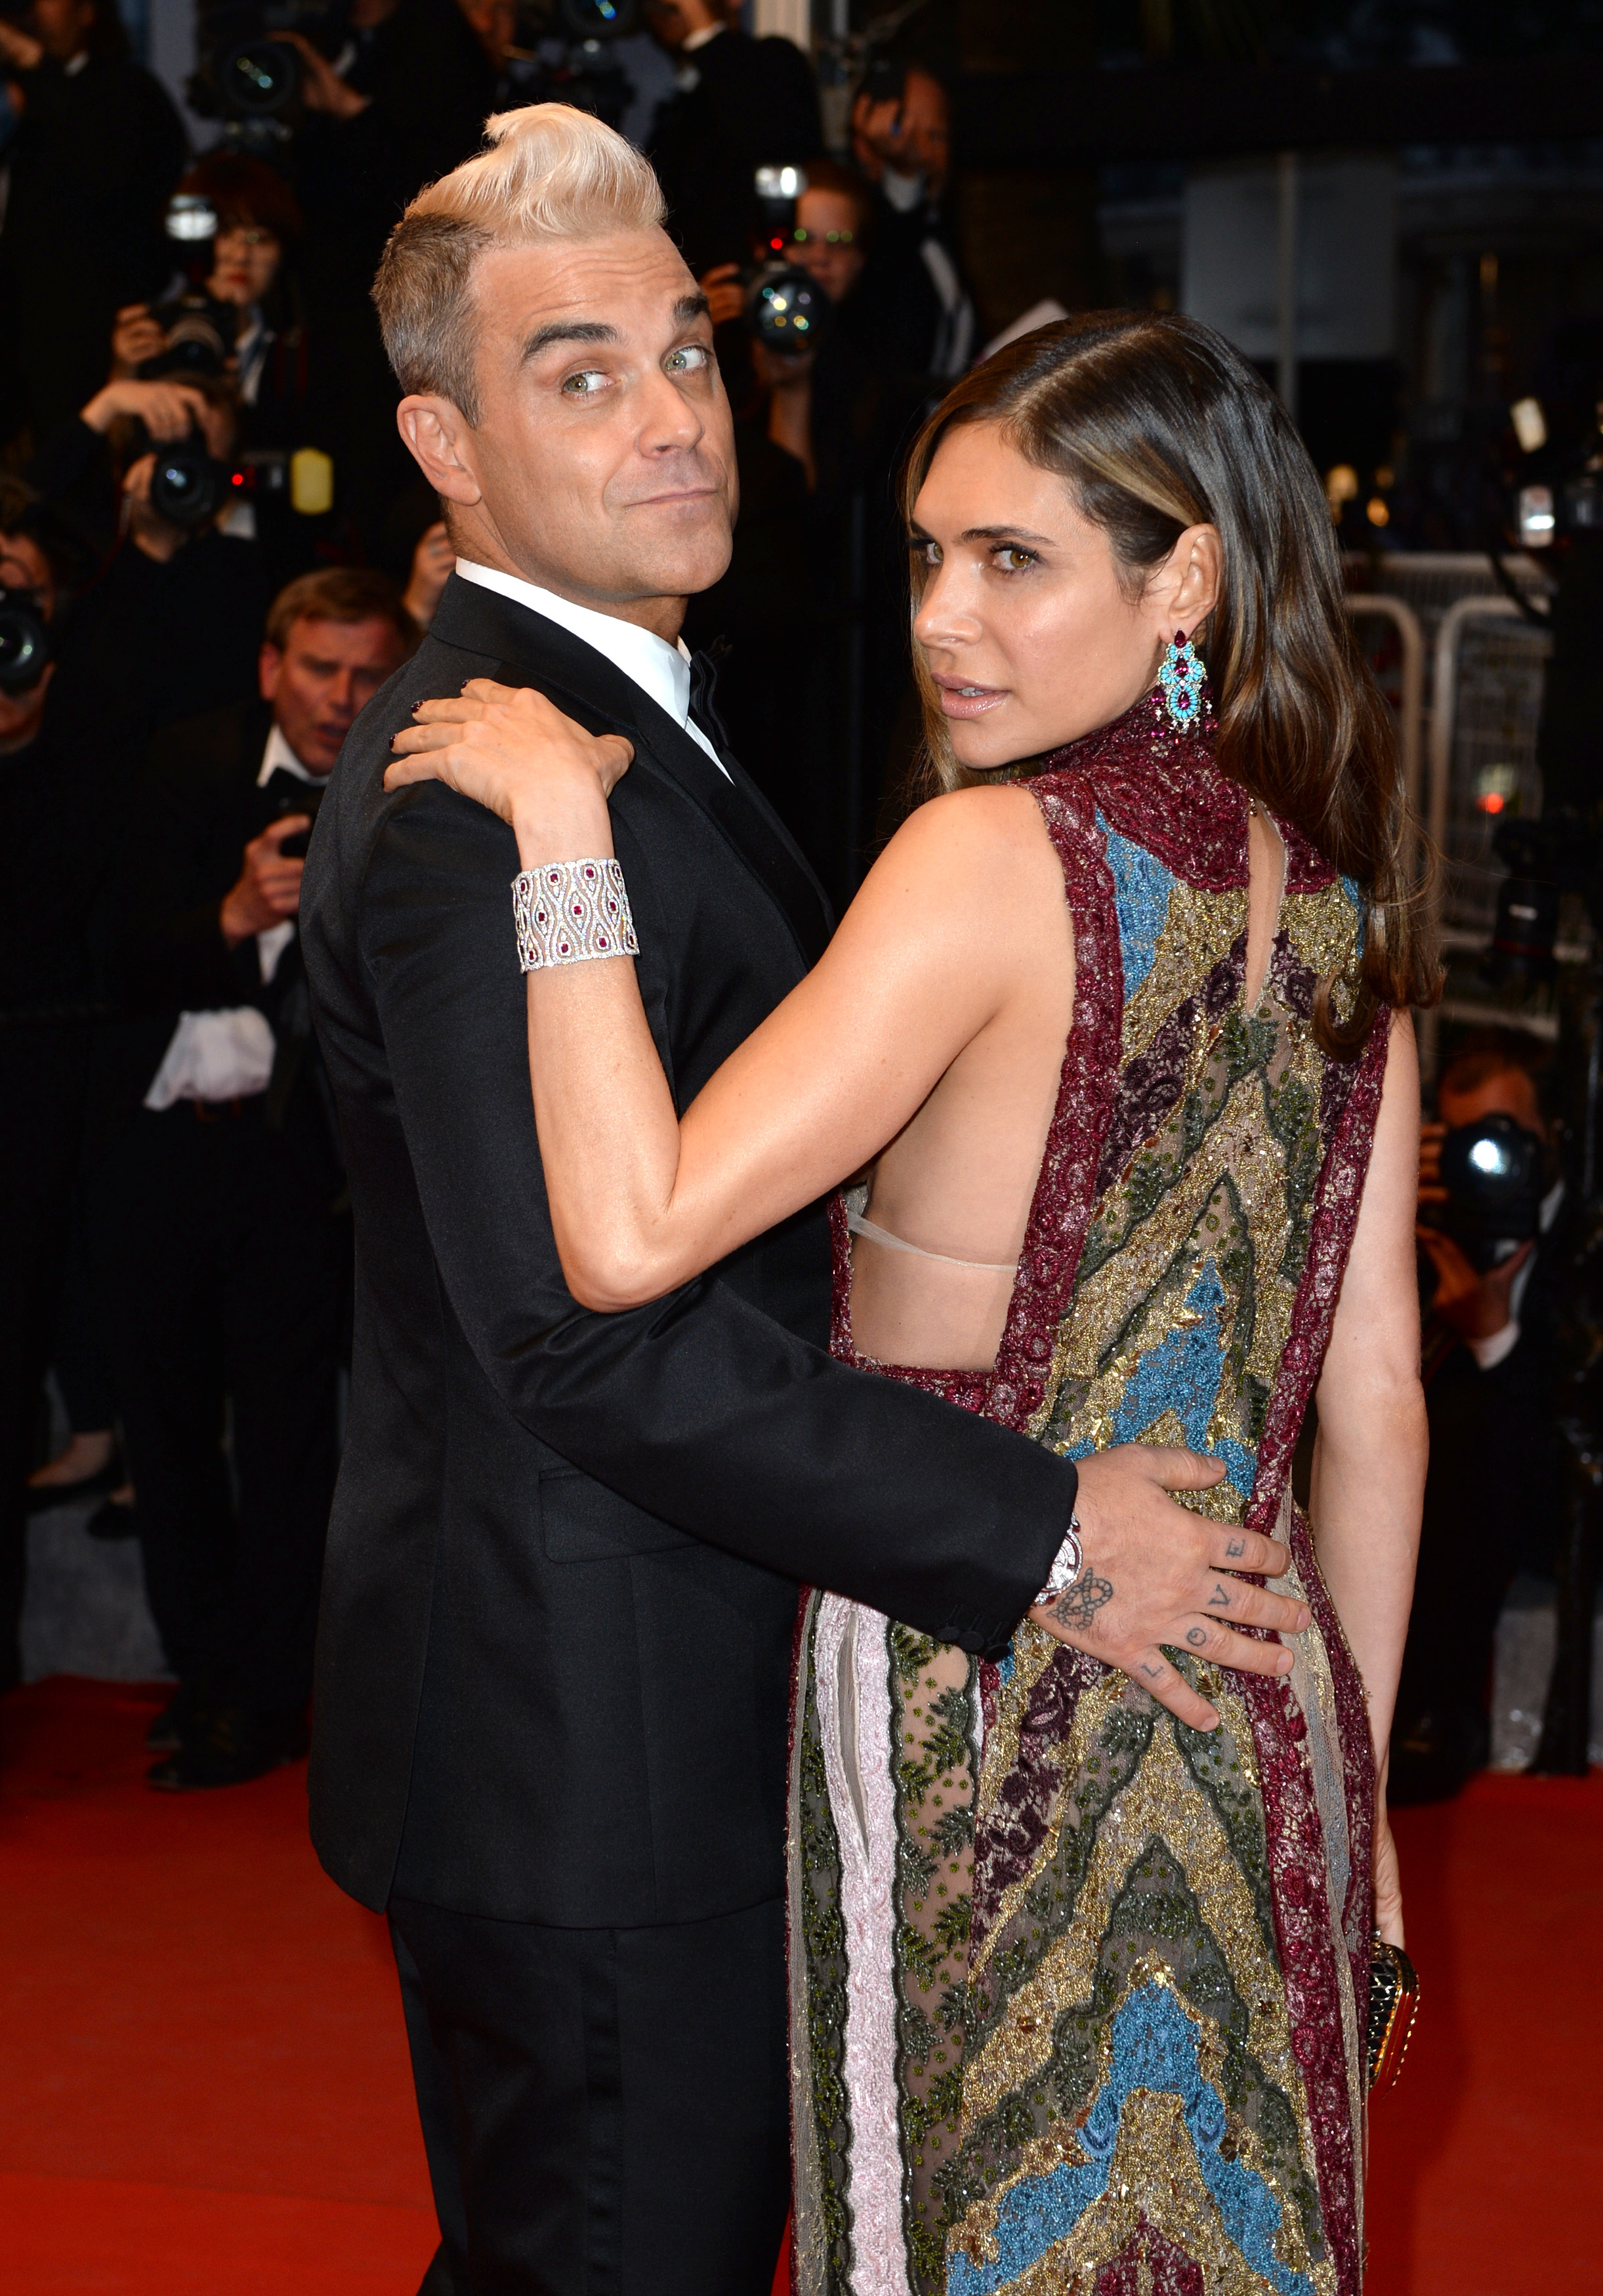 Robbie Williams and wife Ayda Field attending the Sea of Trees premiere taking place during the 68th Festival de Cannes held at the Grand Theatre Lumiere, Palais des Festivals, Cannes, France(Mandatory Credit: Doug Peters/EMPICS Entertainment)